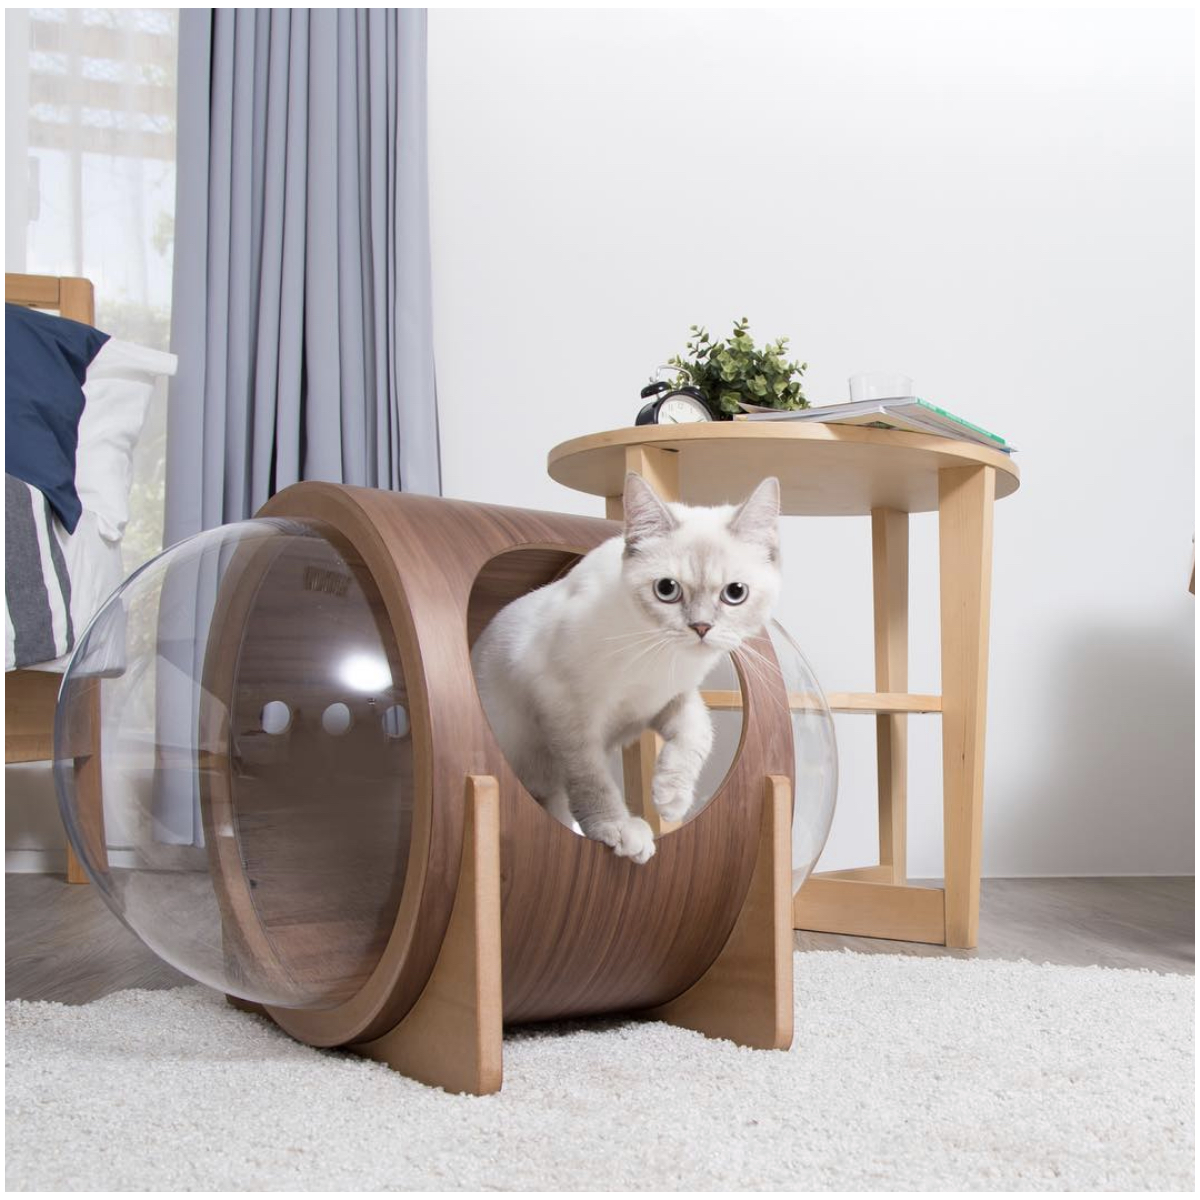 b2aa04ee2e13 Spaceship Alpha Ultra Modern Cat Bed. Are you looking for a Cat Bed for  your feline friend? We are here to help you! We have accumulated many of  the finest ...